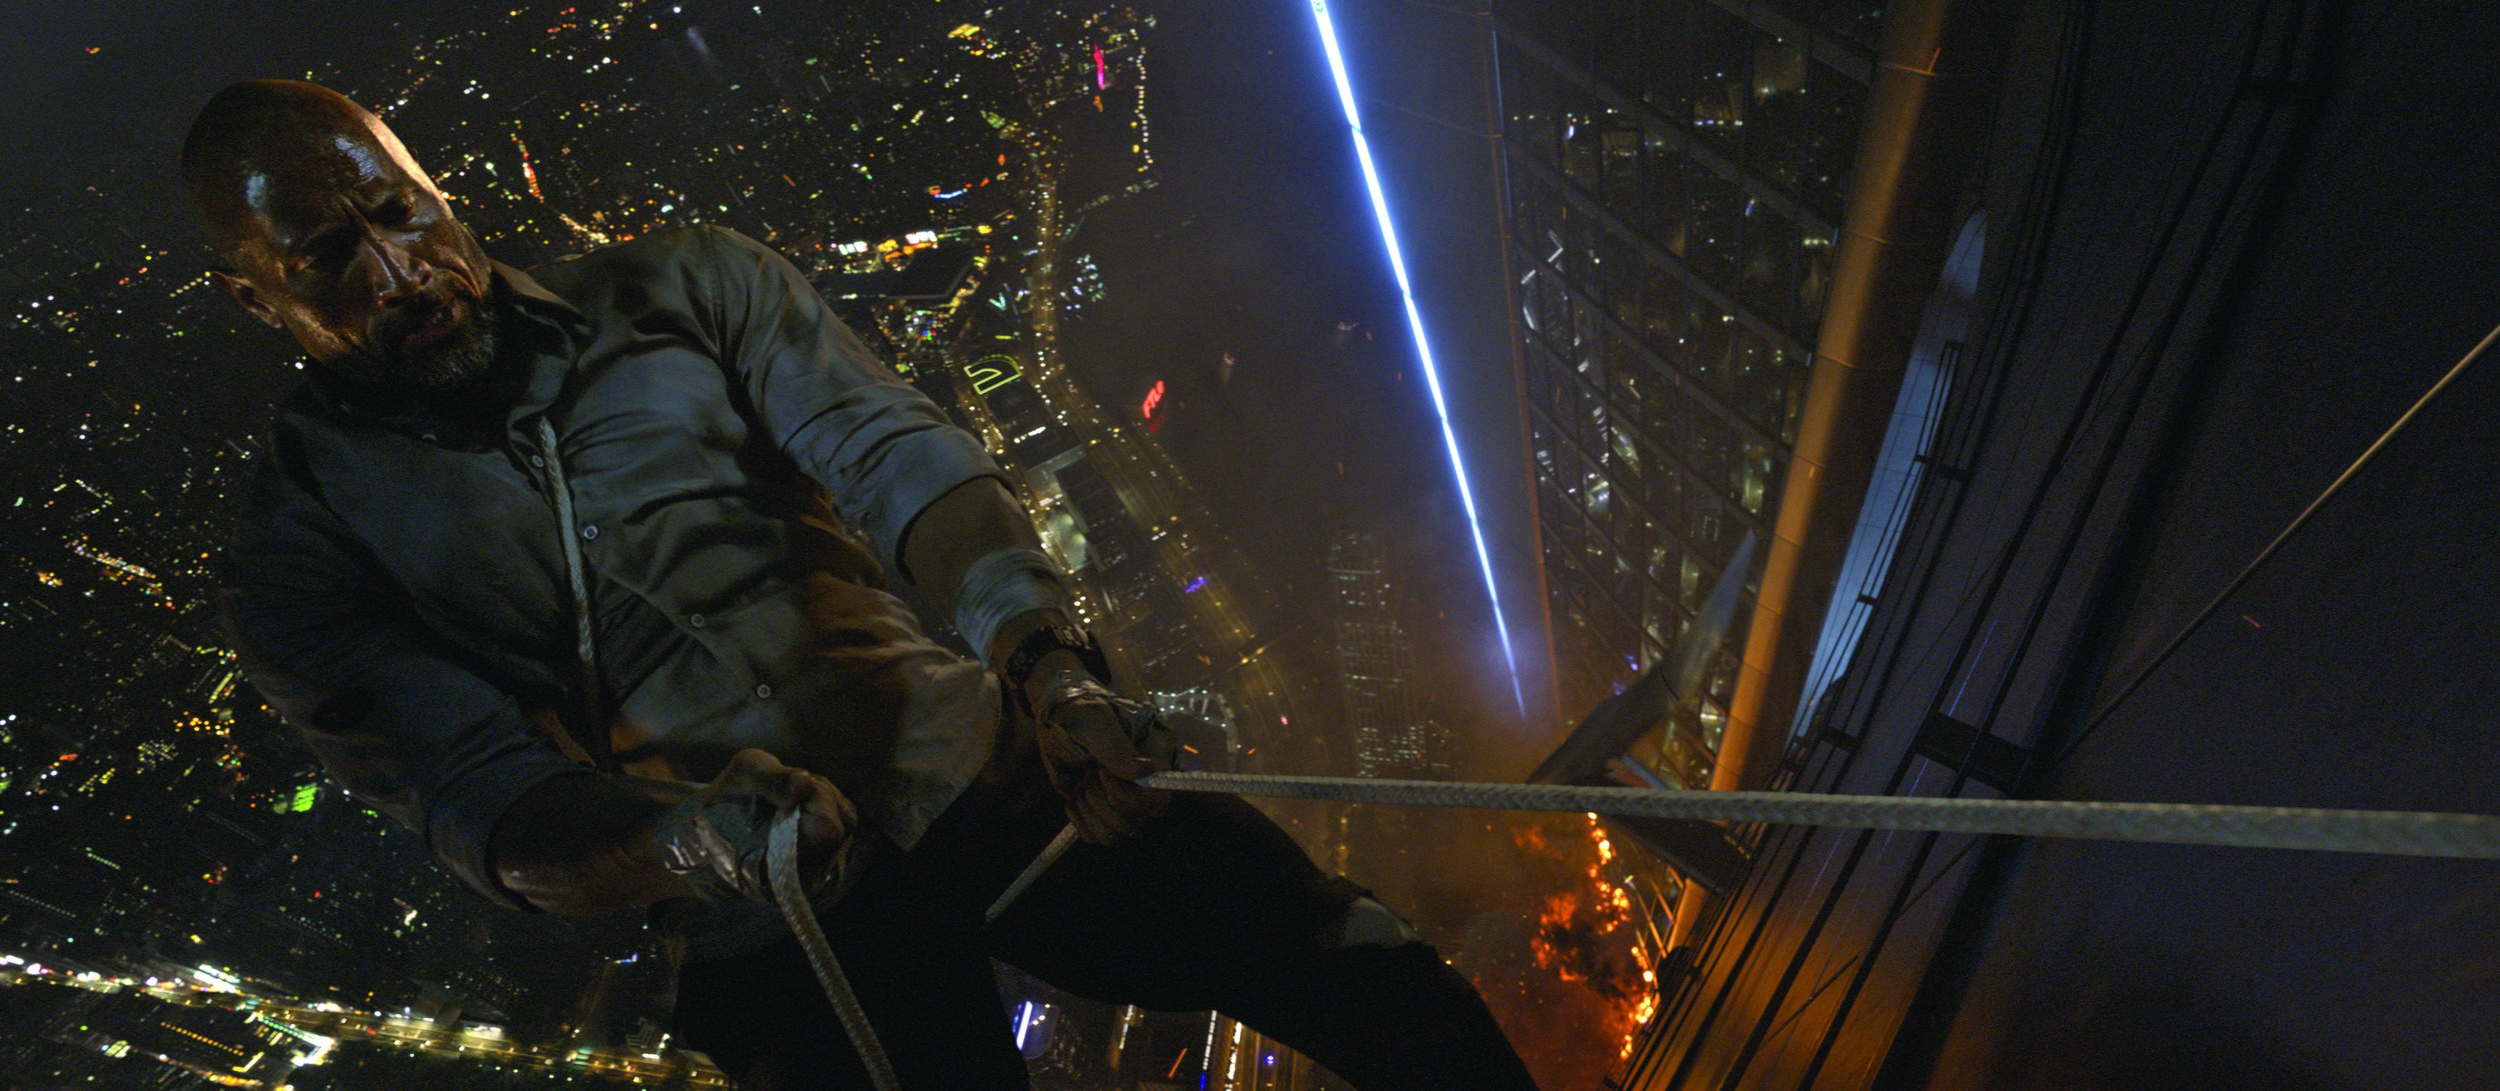 """Dwayne """"The Rock"""" Johnson in """"Skyscraper."""" (Photo courtesy Legendary Pictures/Universal)"""